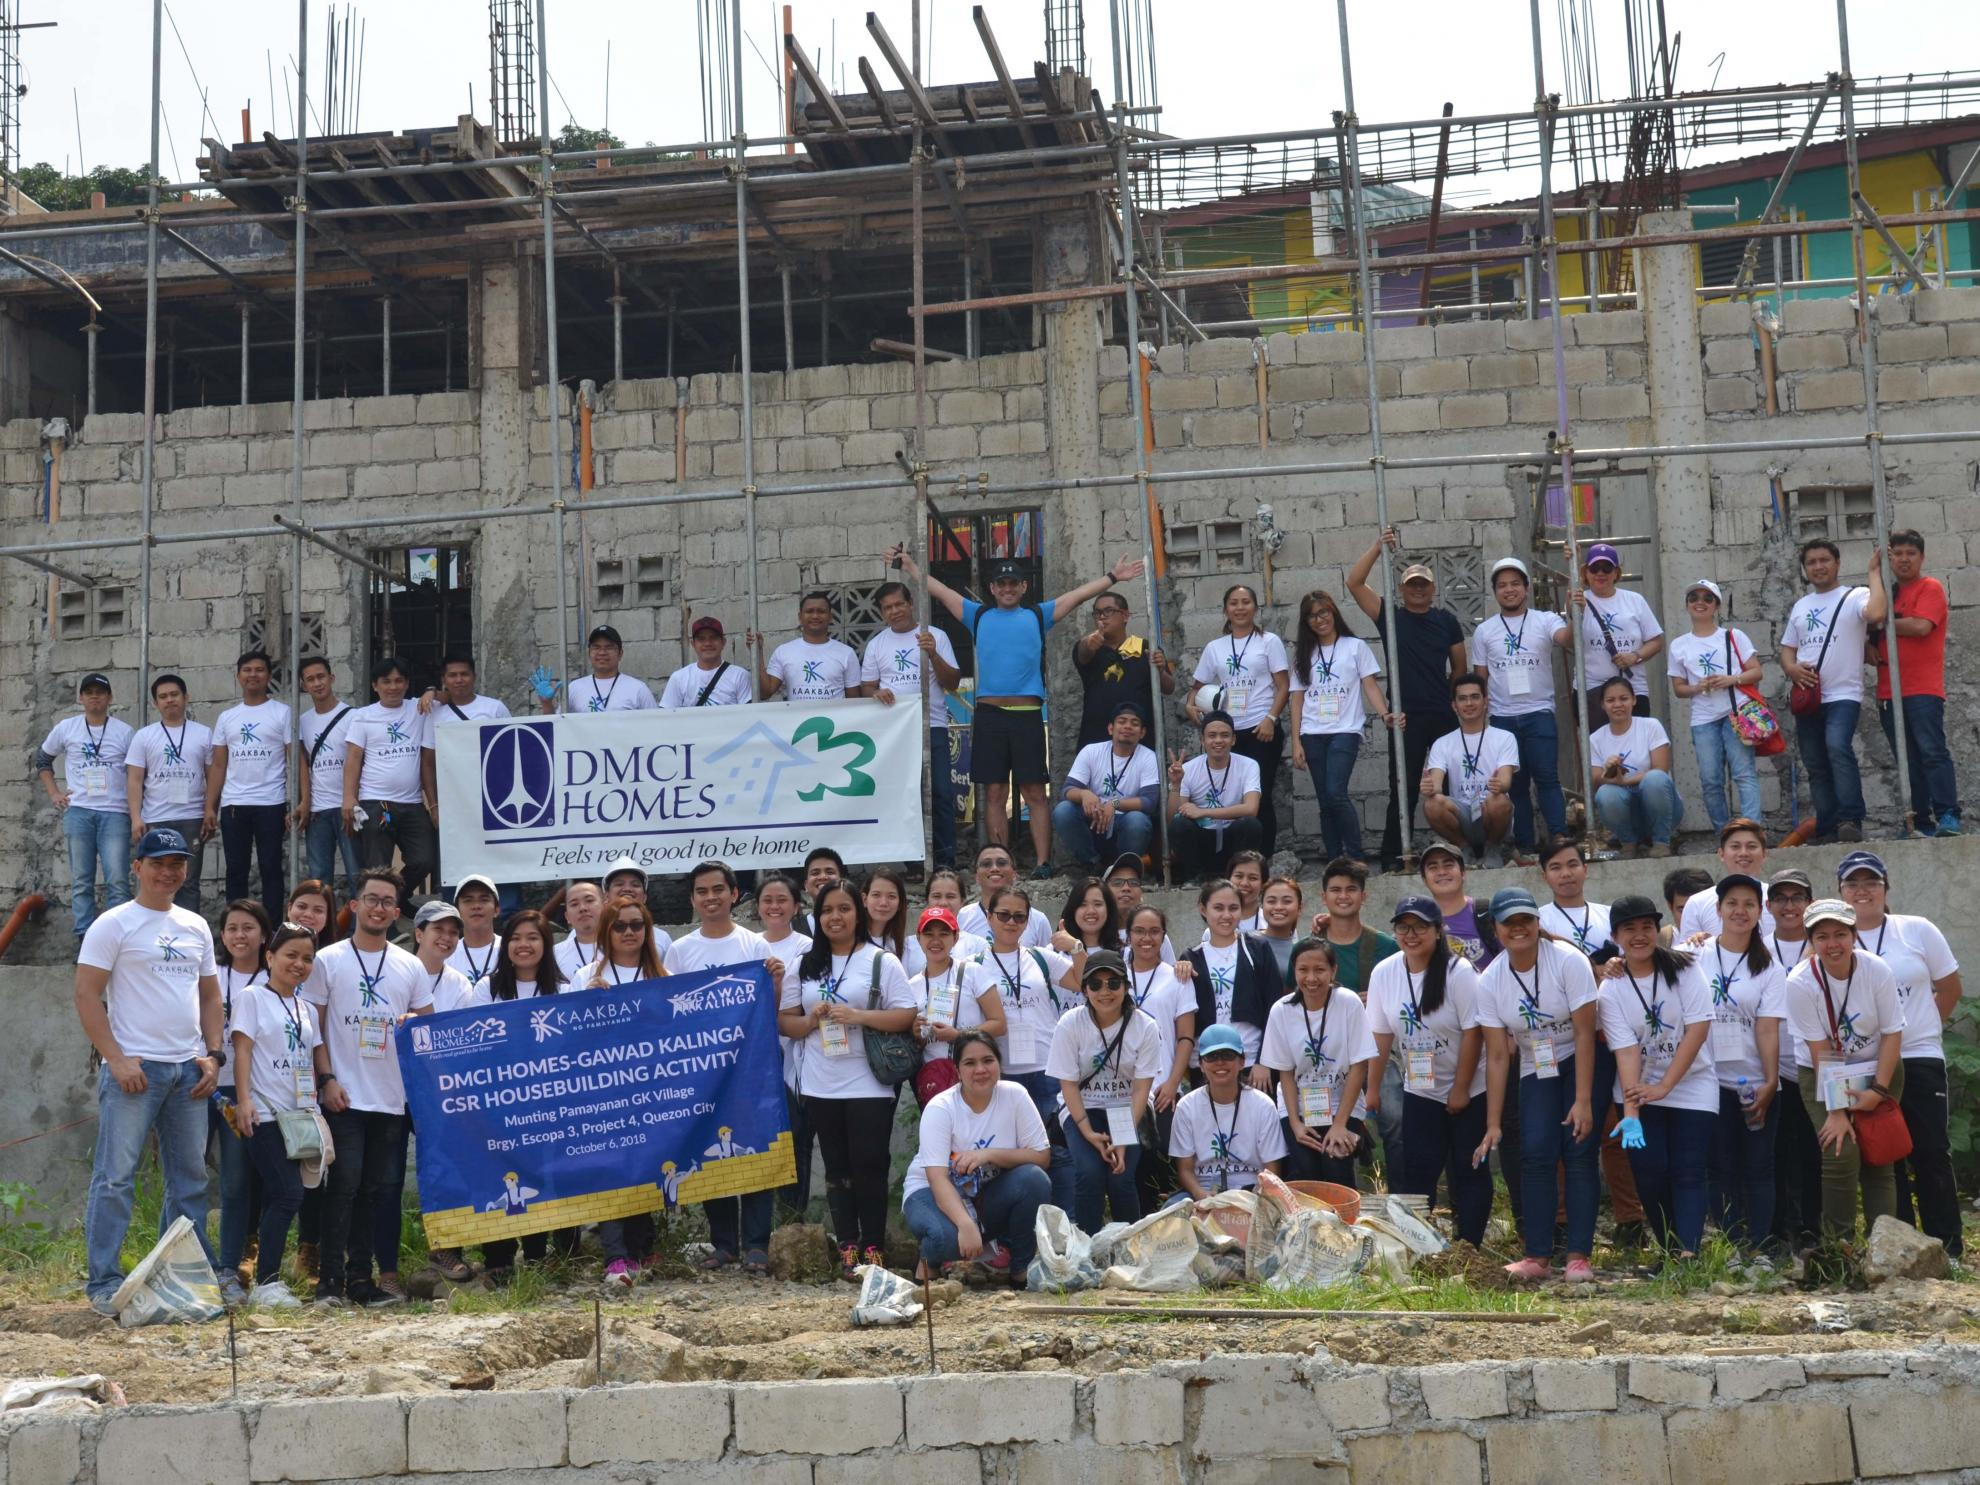 DMCI Homes, Gawad Kalinga build homes for PWDs in QC community